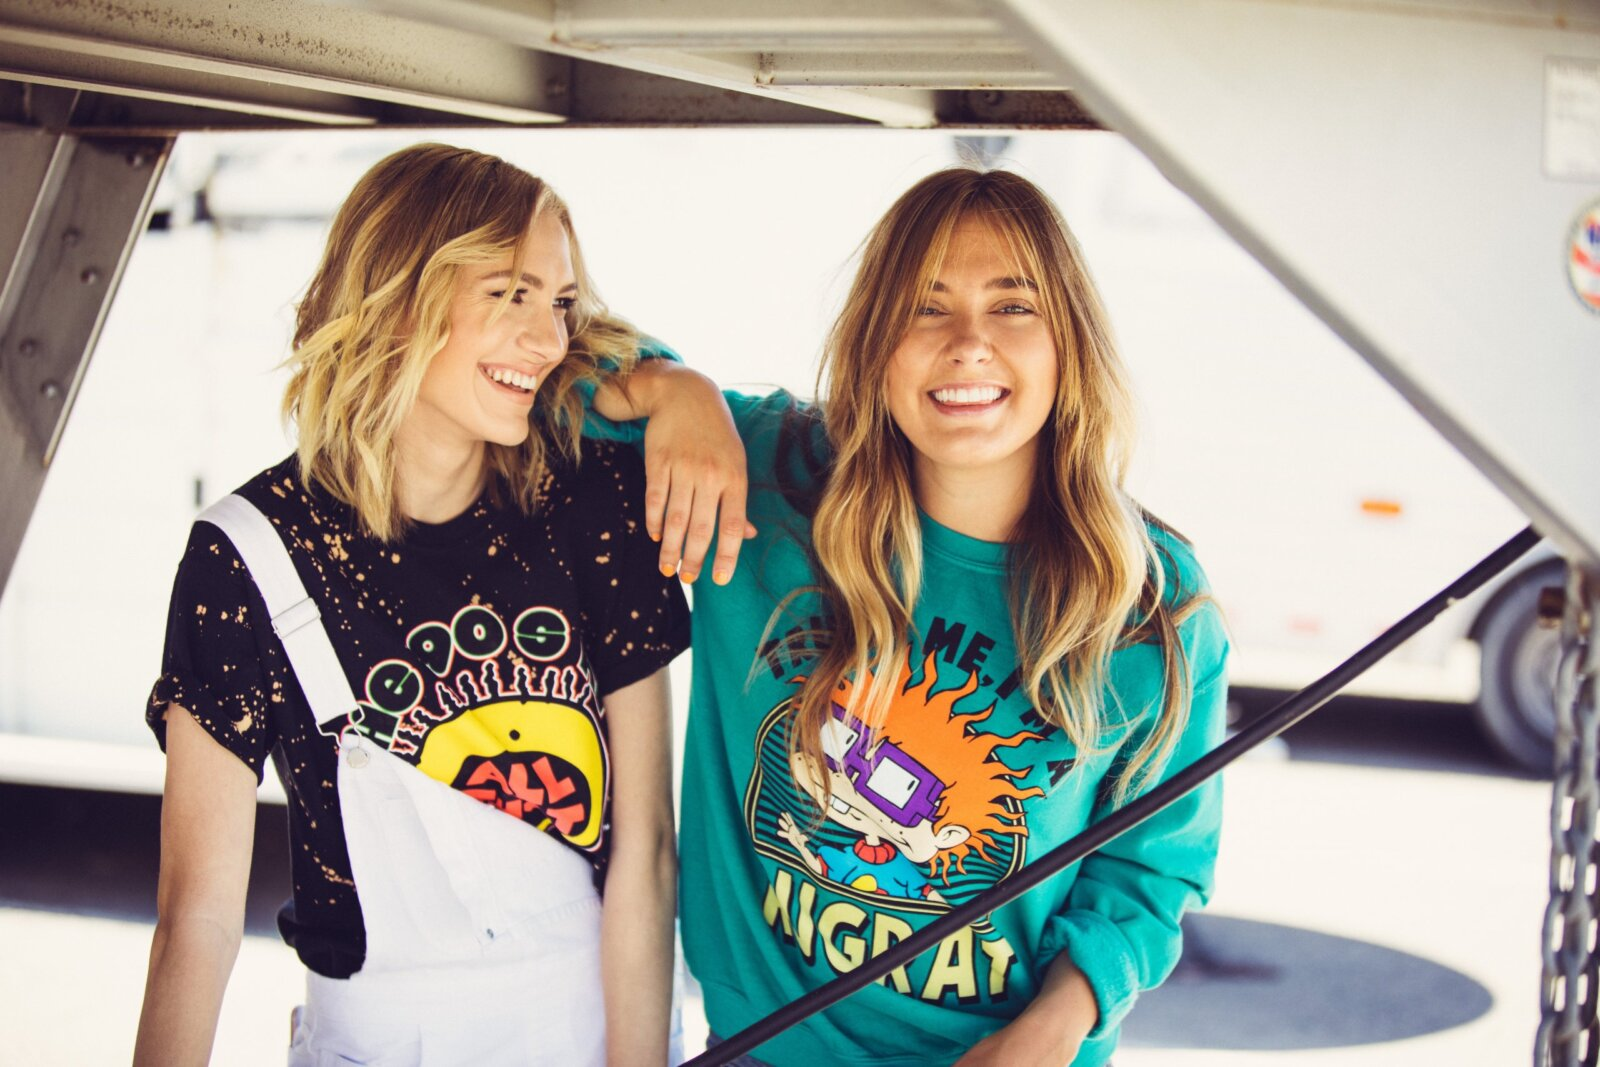 #FlashbackFriday: 90's Nostalgia Comes to Life with Nickelodeon X Love Tribe Collection